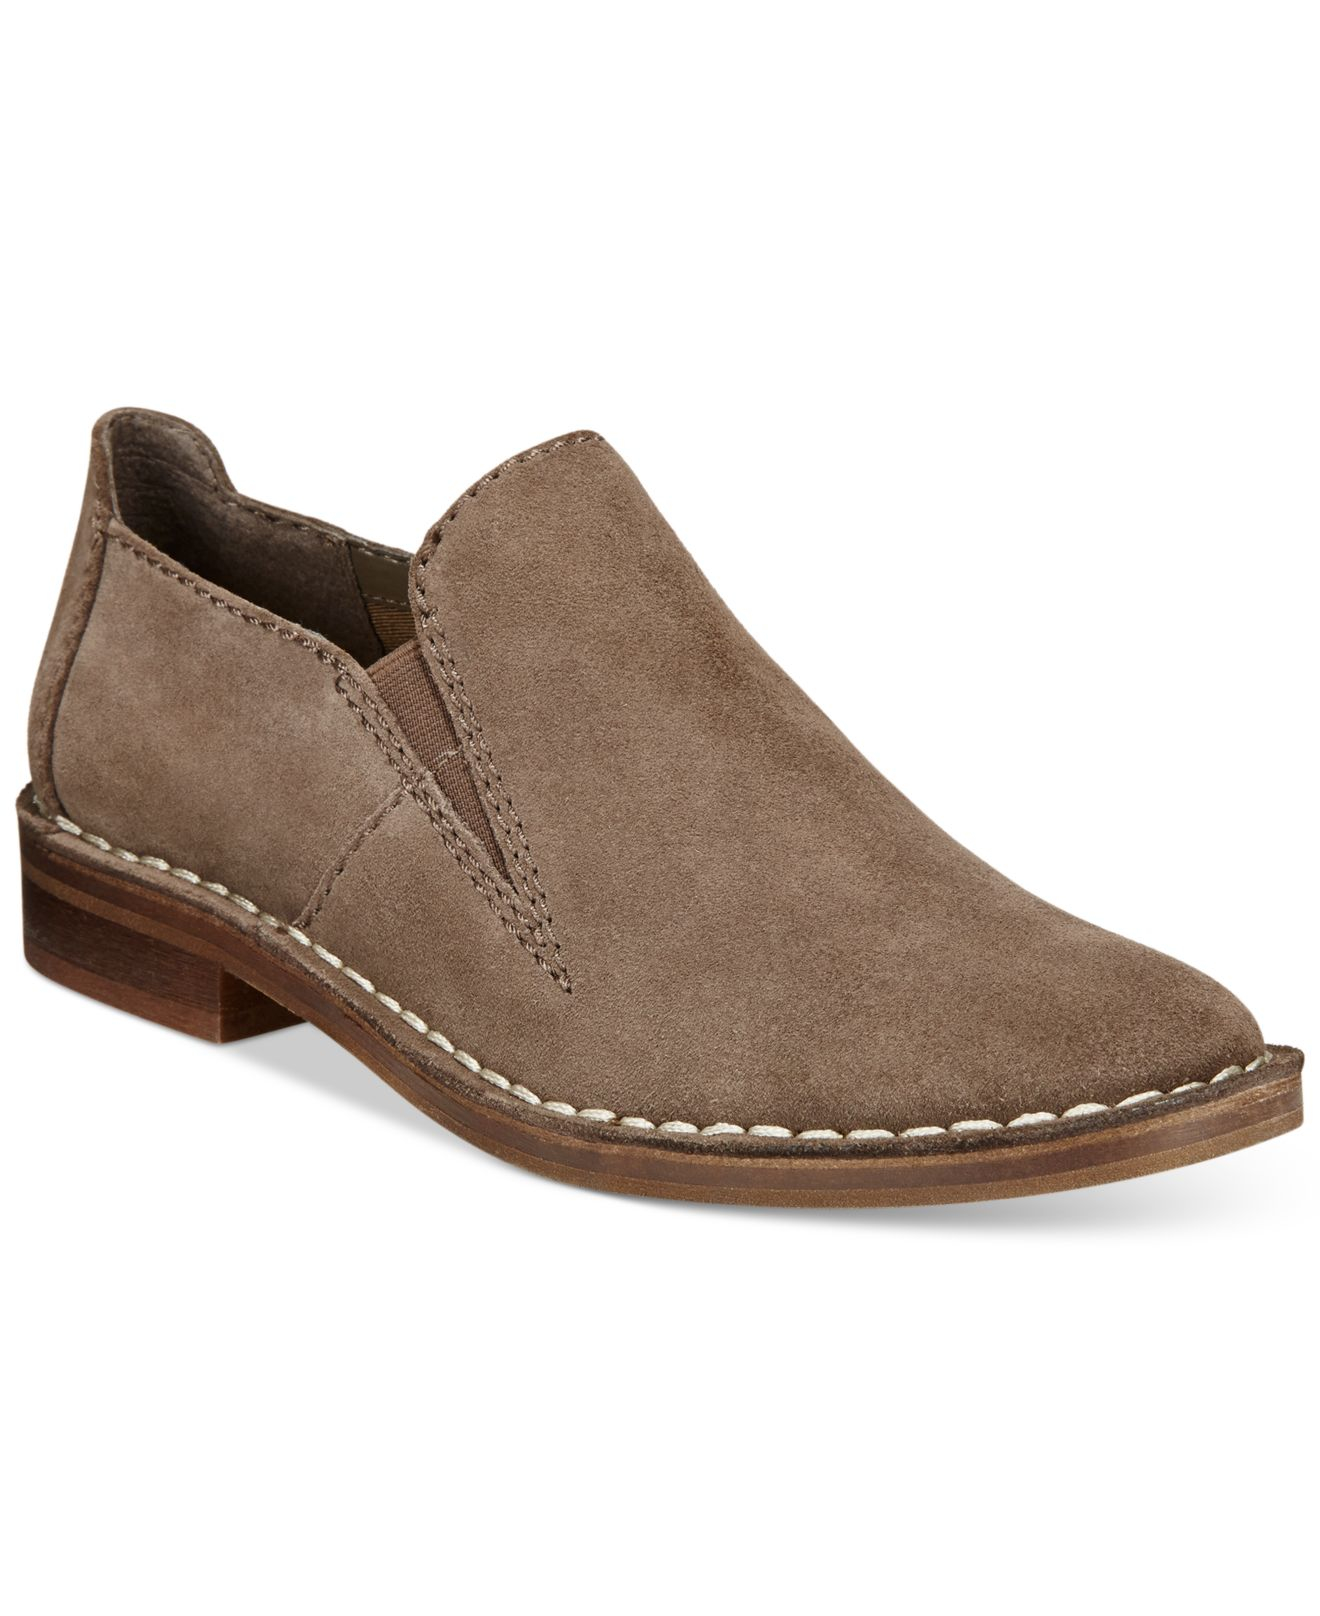 clarks point single women Women's clarks lexi complete your work or casual outfits with the wide variety of stylish and comfortable women's shoes on overstockcom heels come in a.